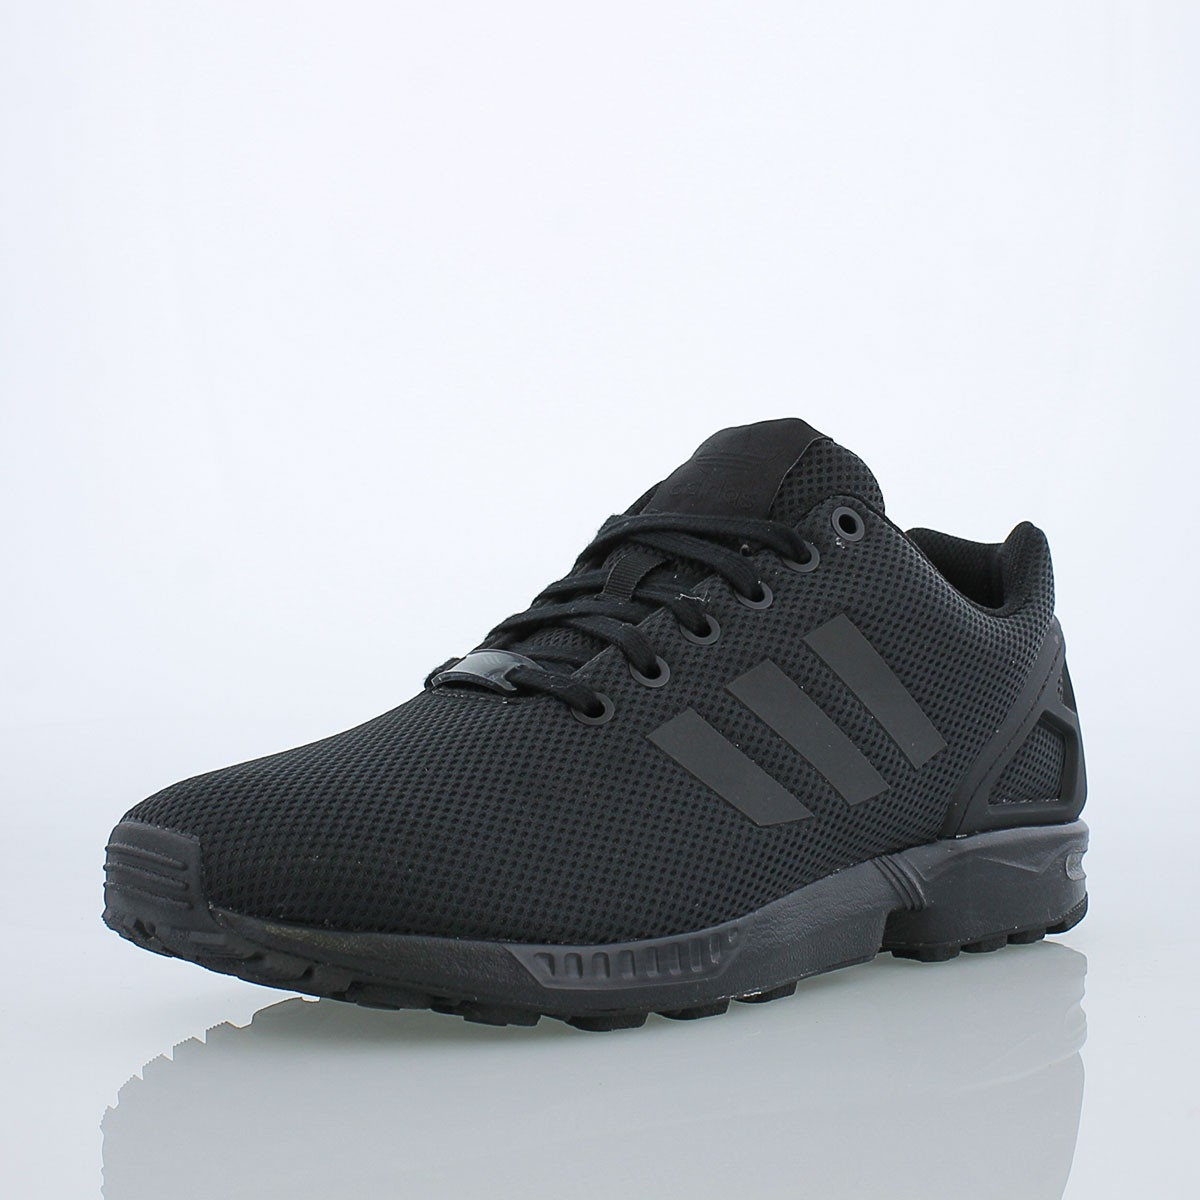 adidas zx flux s78977 k k sound. Black Bedroom Furniture Sets. Home Design Ideas